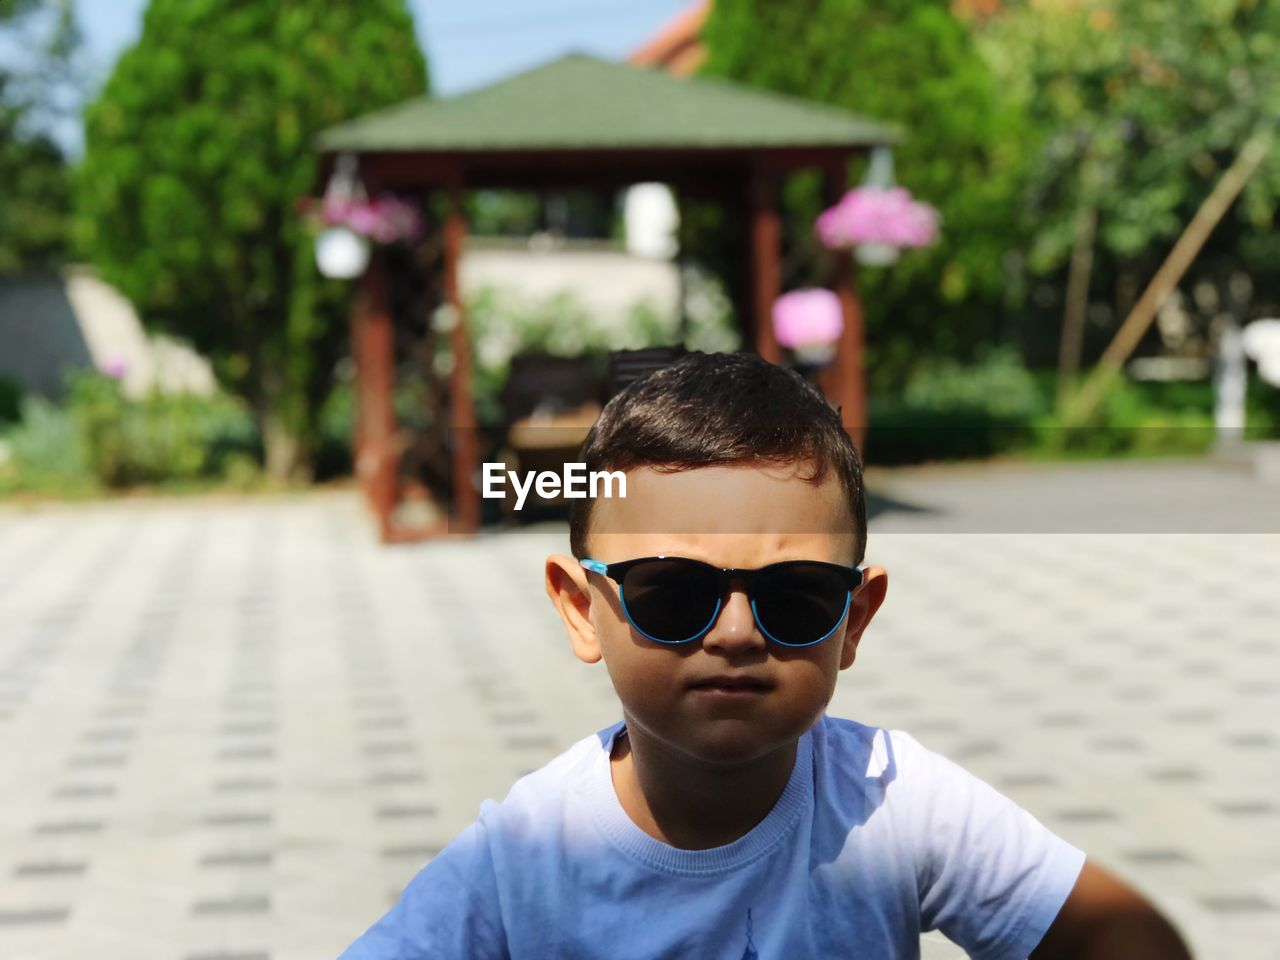 real people, portrait, one person, sunglasses, headshot, front view, child, focus on foreground, glasses, lifestyles, day, childhood, leisure activity, boys, males, casual clothing, men, outdoors, innocence